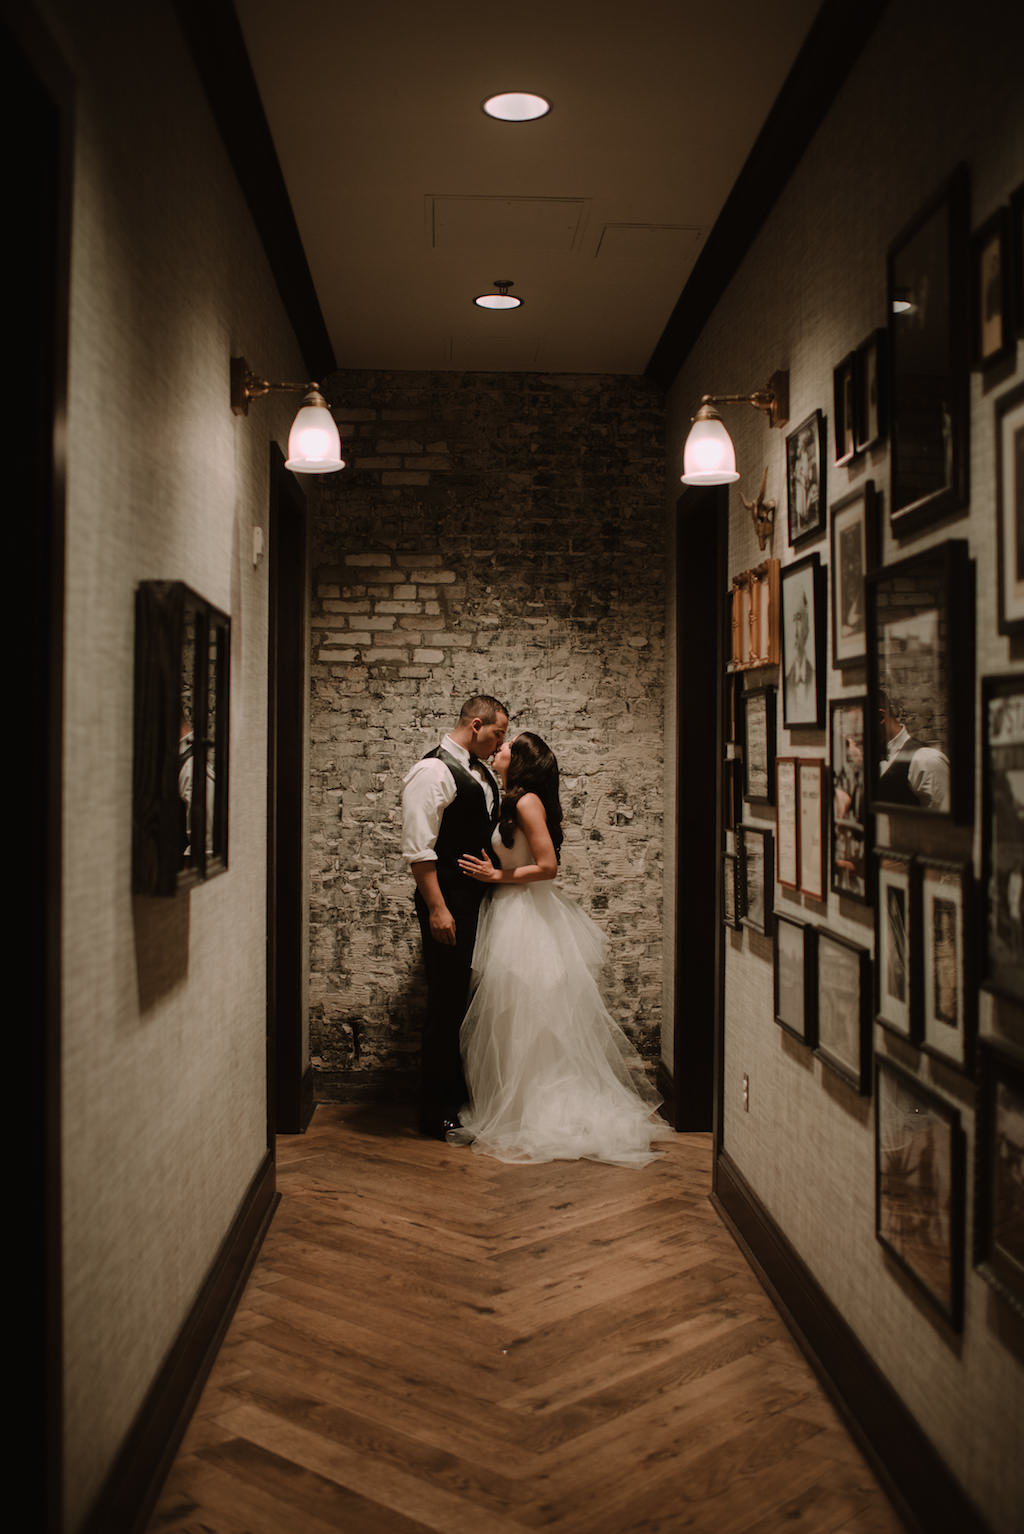 Indoor Wedding Portrait in Hallway with Whitewash Brick Backdrop, Bride in Sweetheart Strapless Tulle Wedding Dress with Rhinestone Belt, Groom in Black Vest with Black Bowtie | South Tampa Historic Wedding Venue The Oxford Exchange | Bridal Shop The Bride Tampa